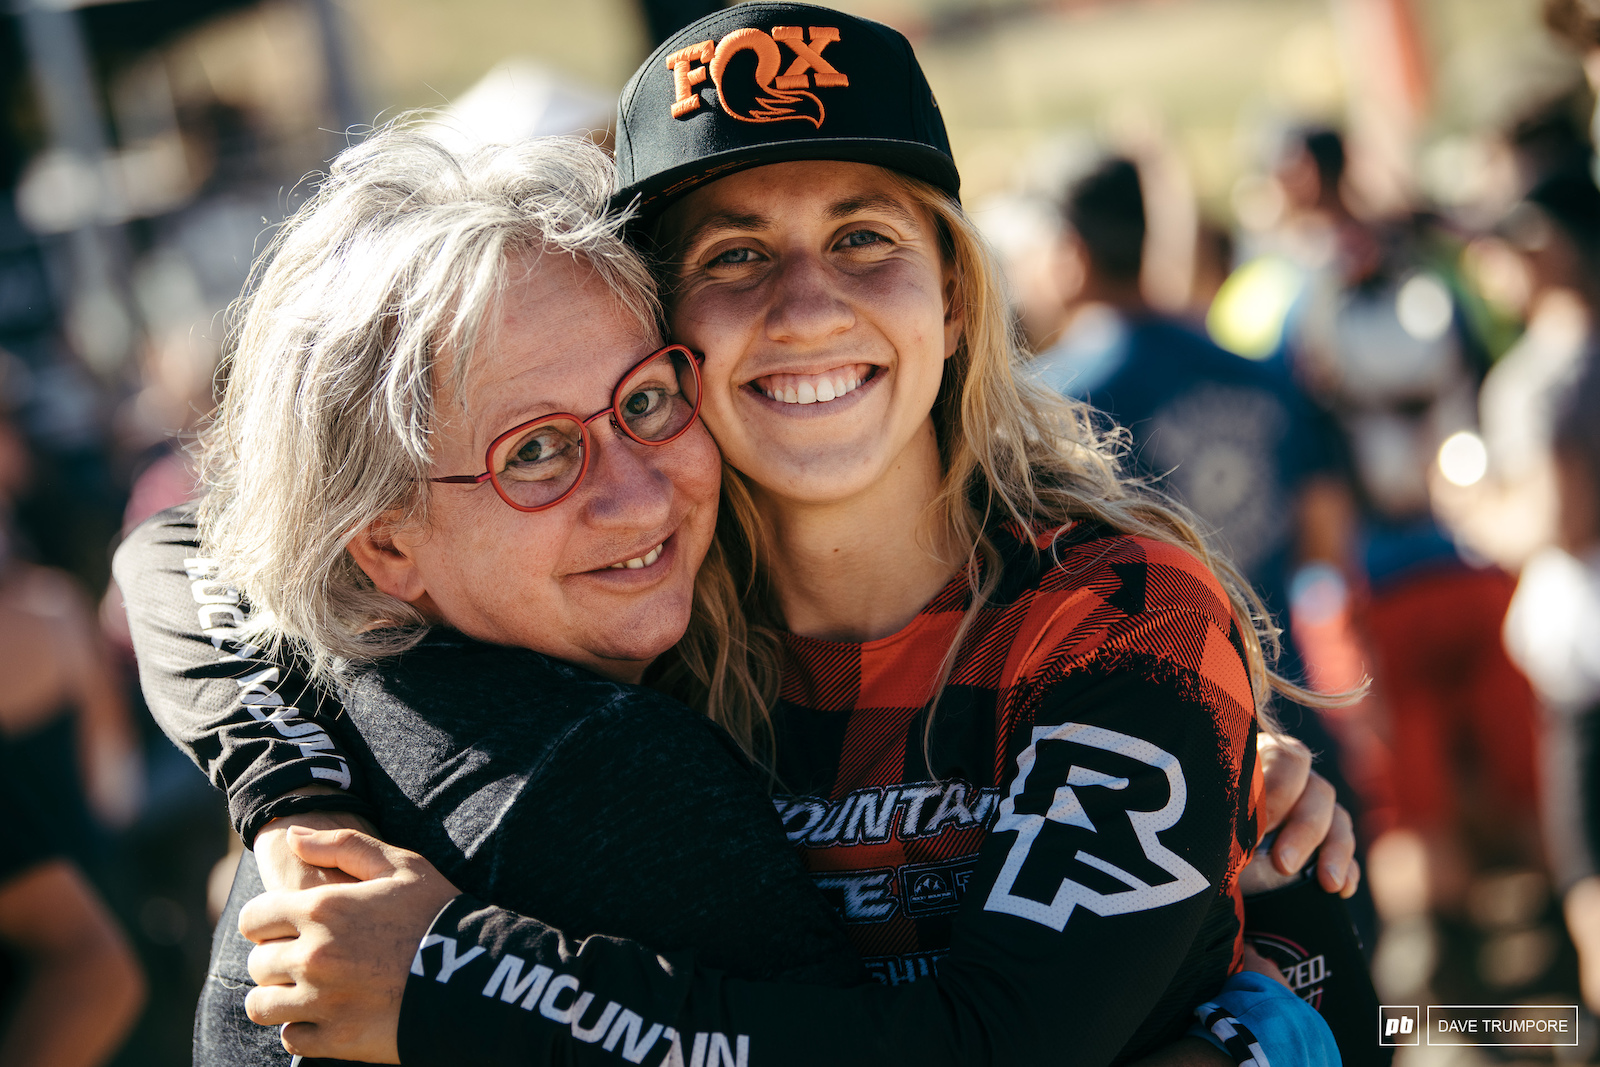 Andreane Lanthier-Nadeau celebrates with her mom after finishing 3rd on the day